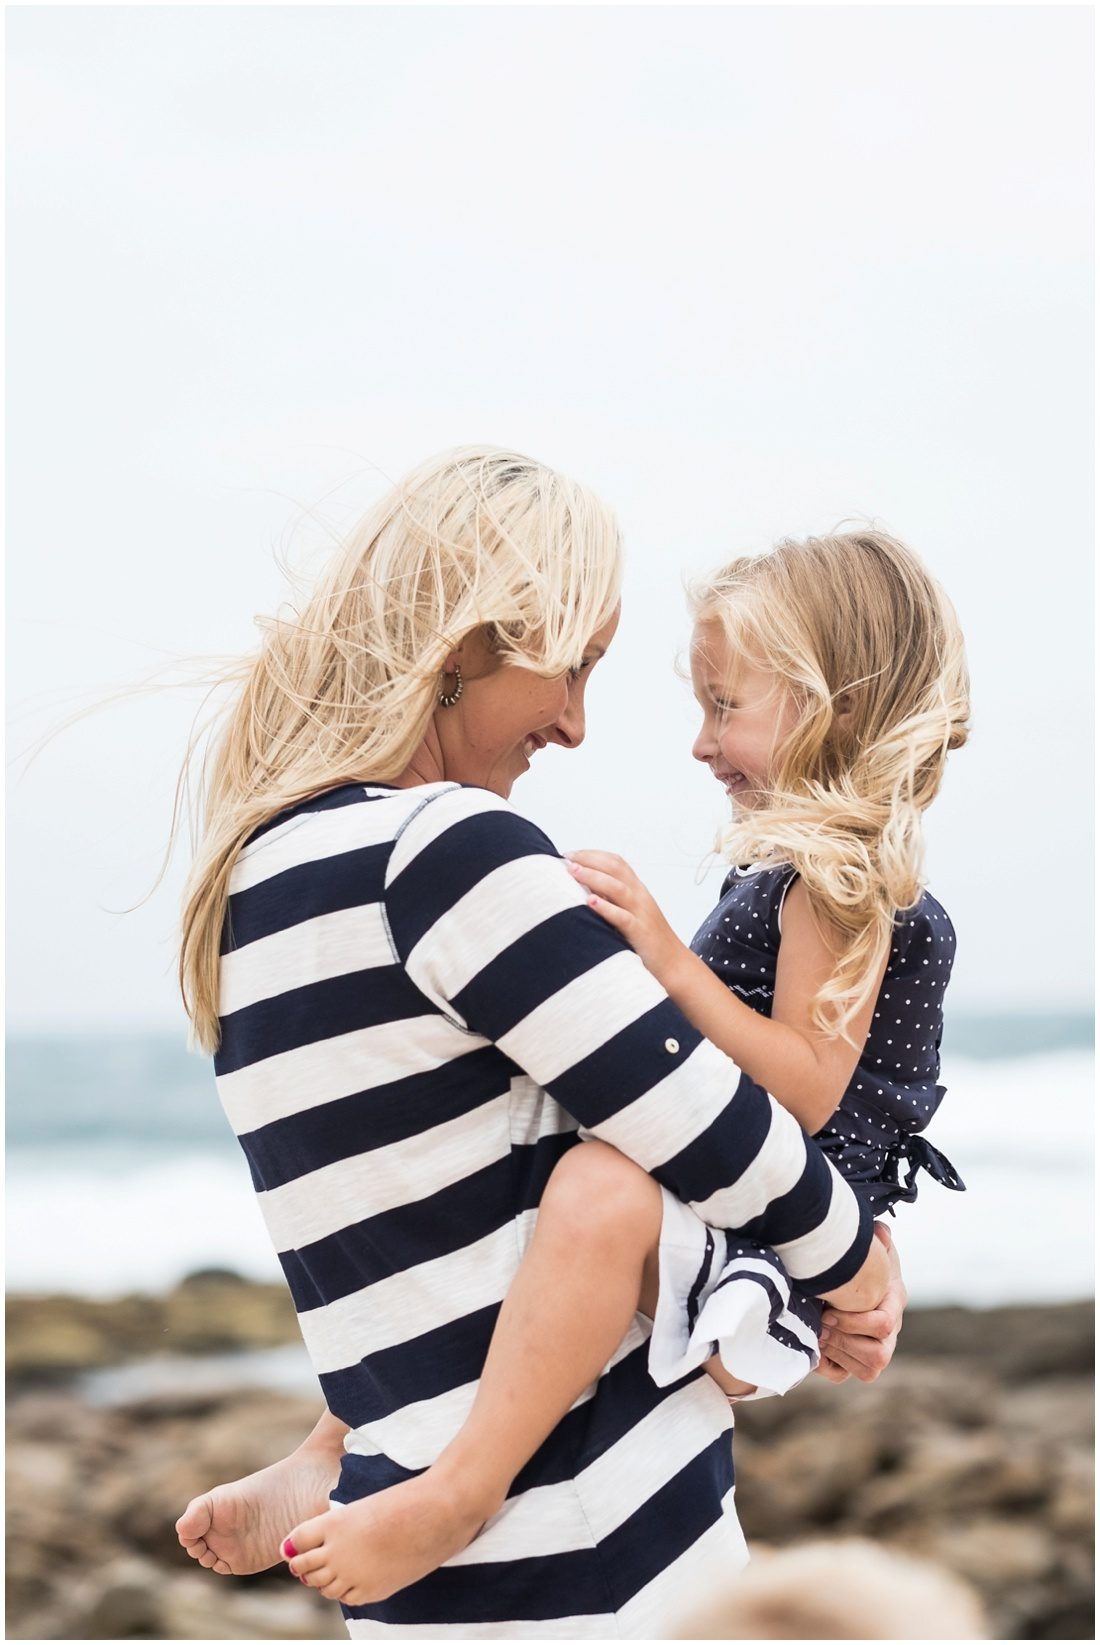 Garden Route-Mossel Bay-Studio and beach session-Haasbroek family-27